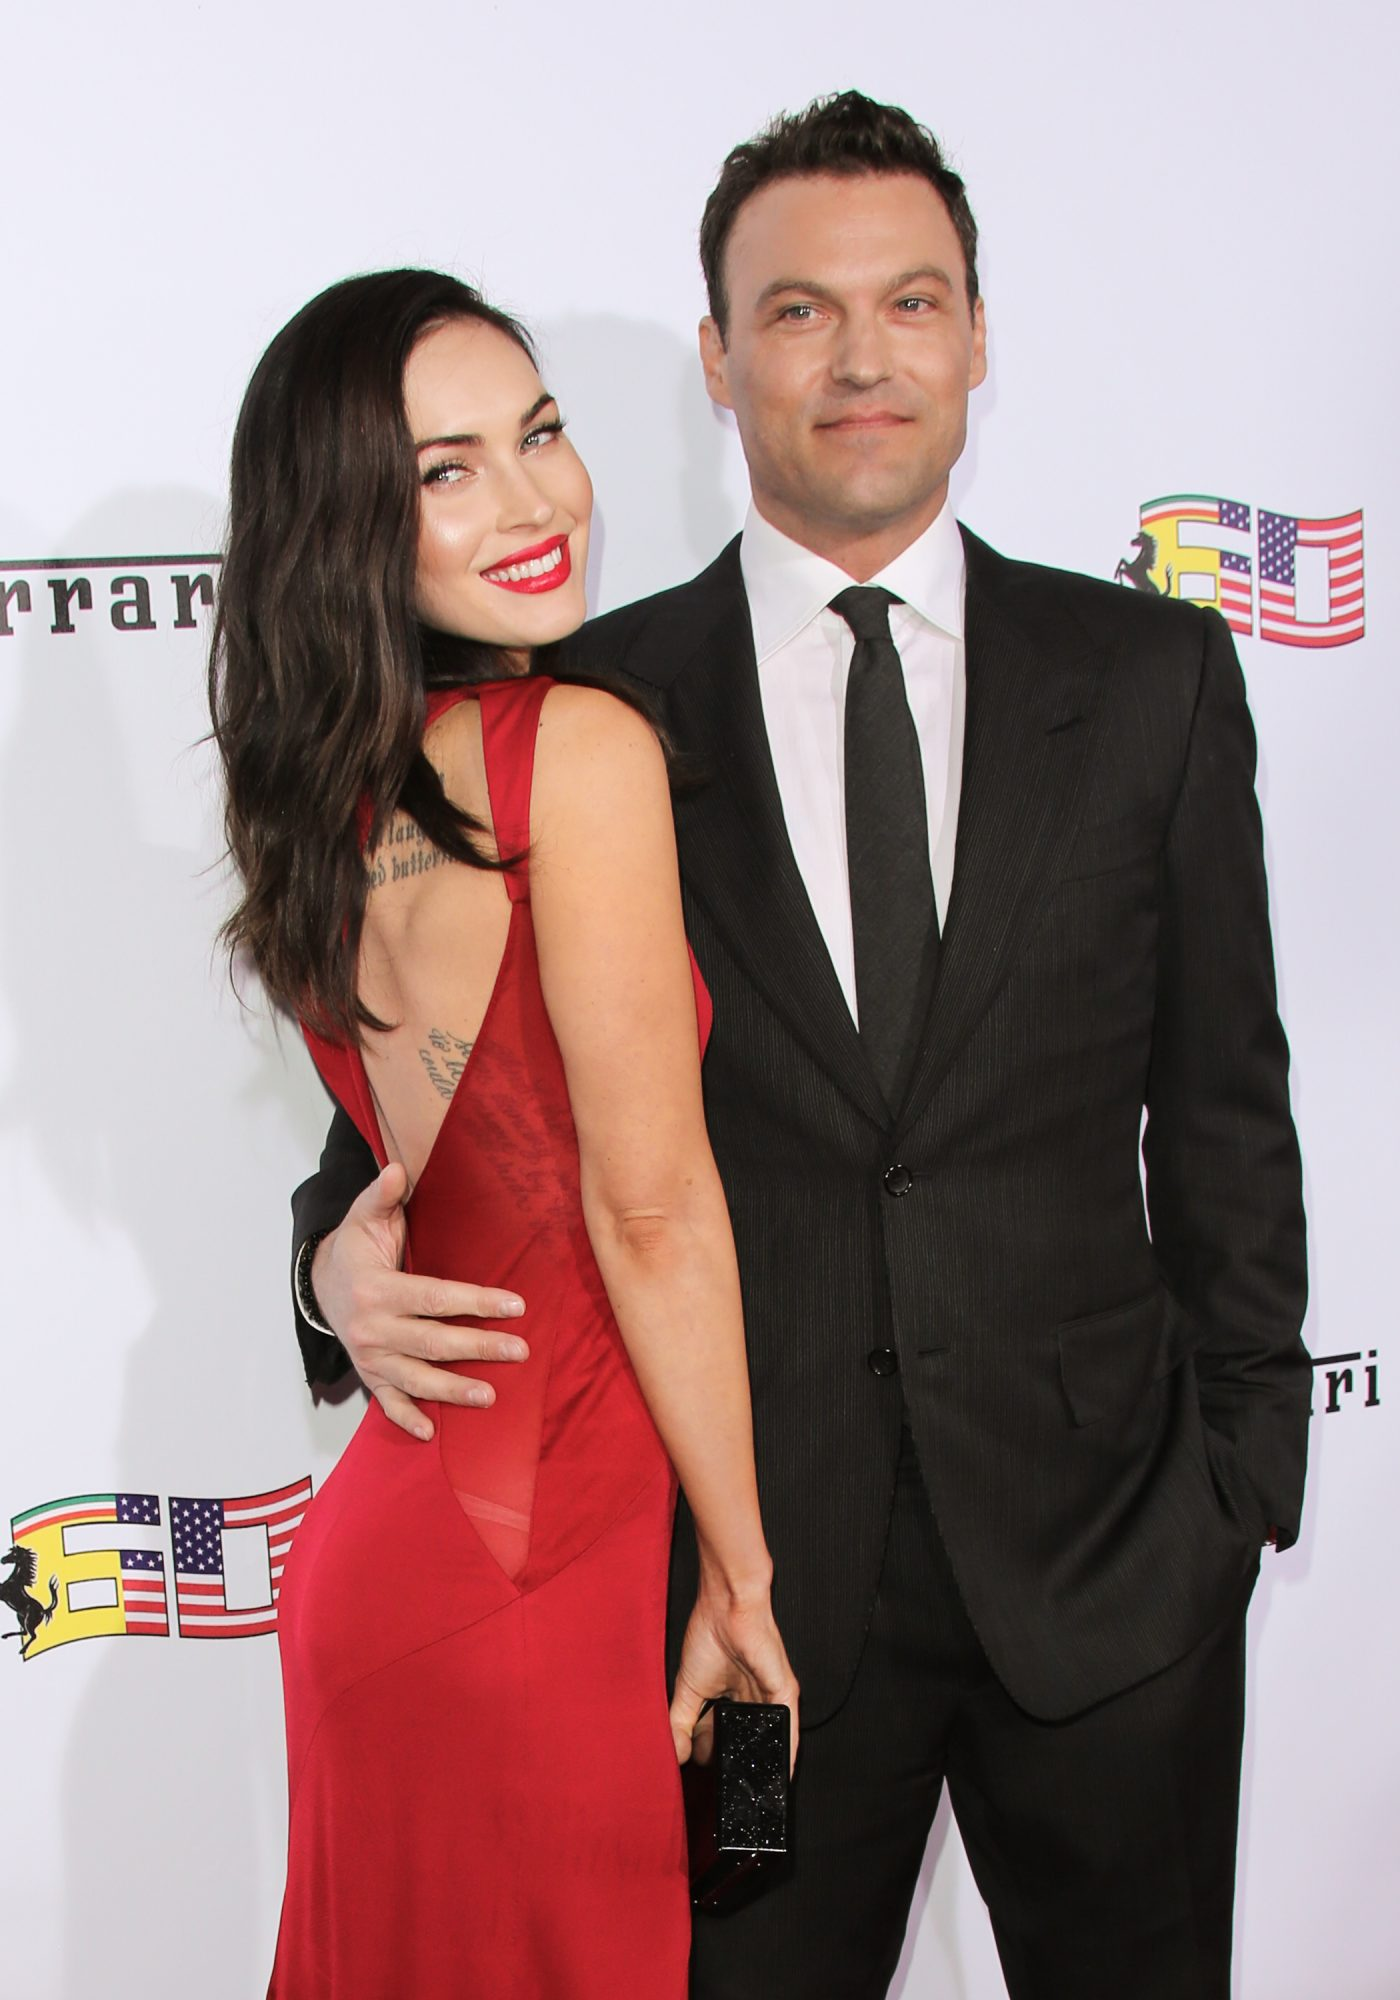 Ferrari's 60th Anniversary In The USA Gala